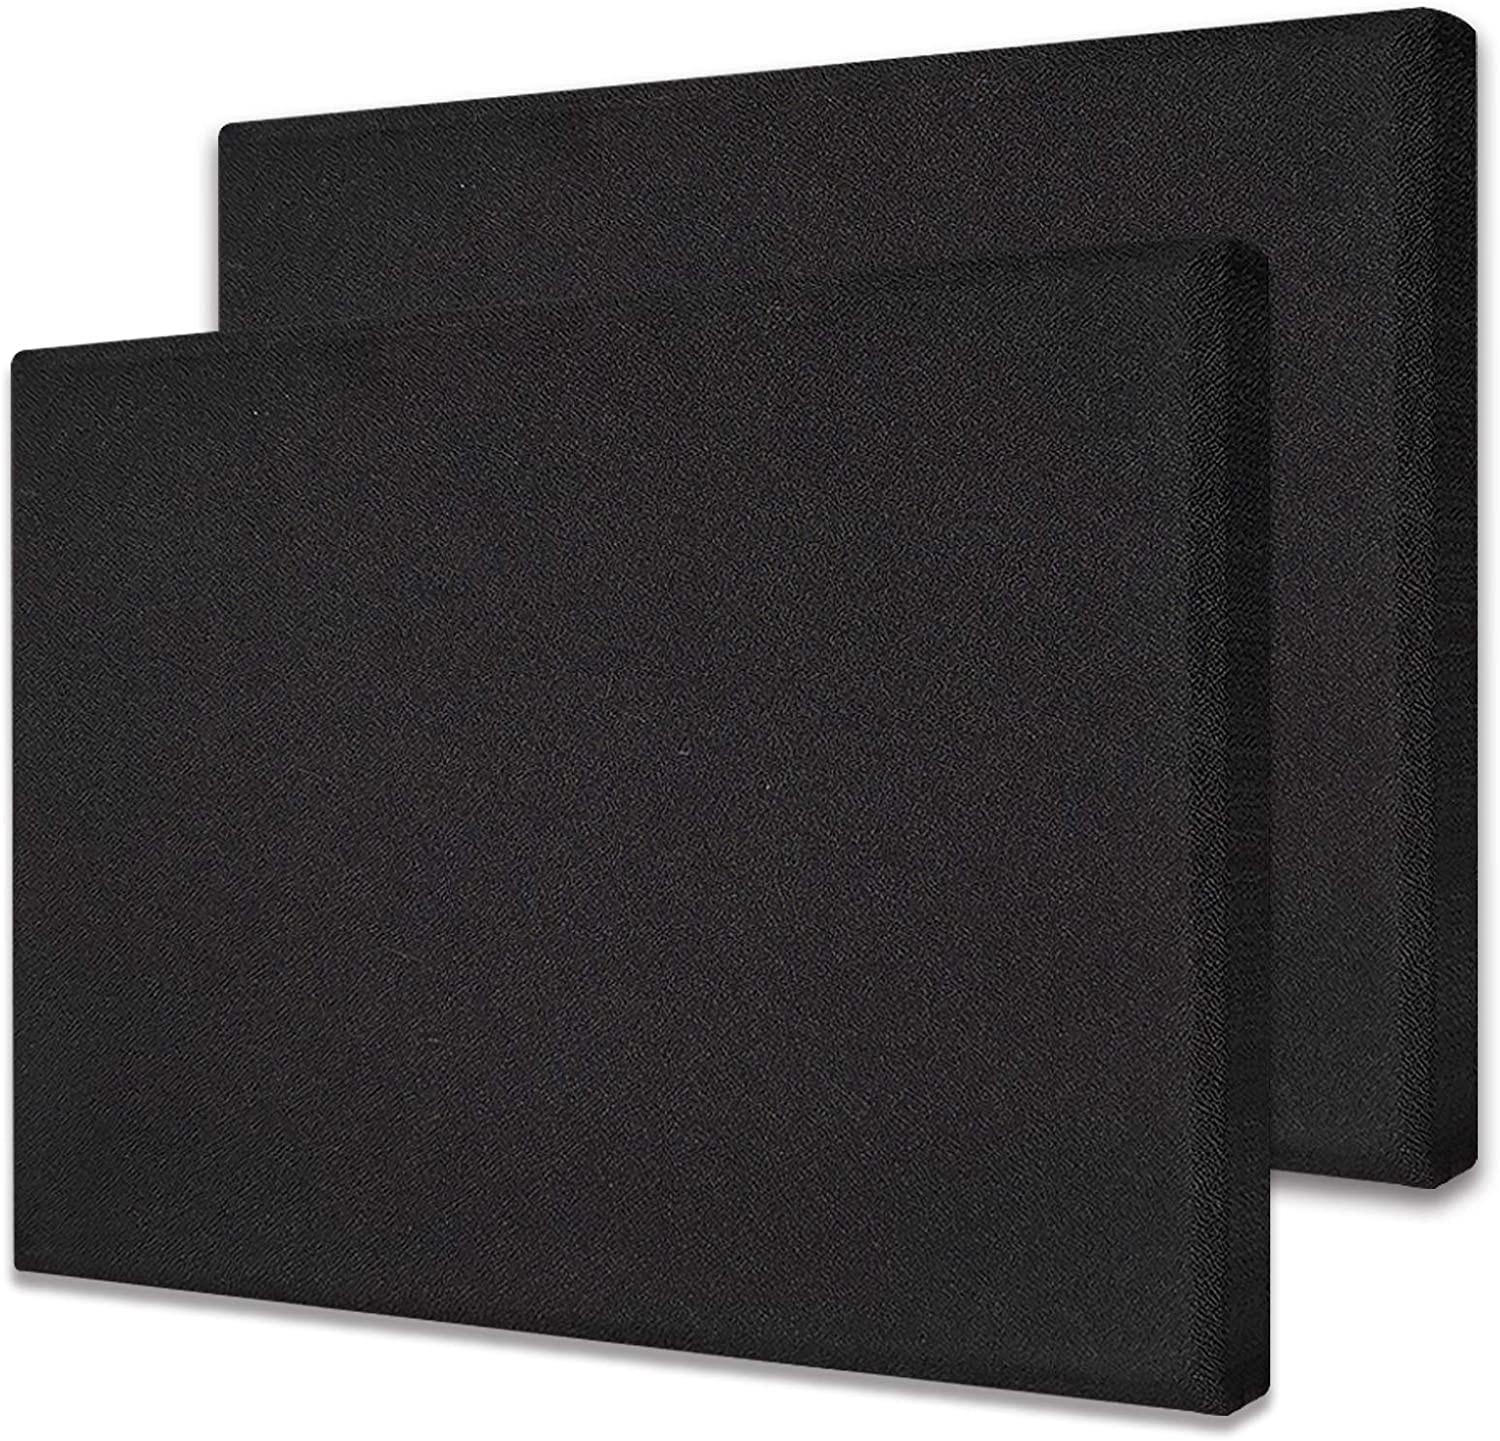 Acoustic Panel - Sound Absorber